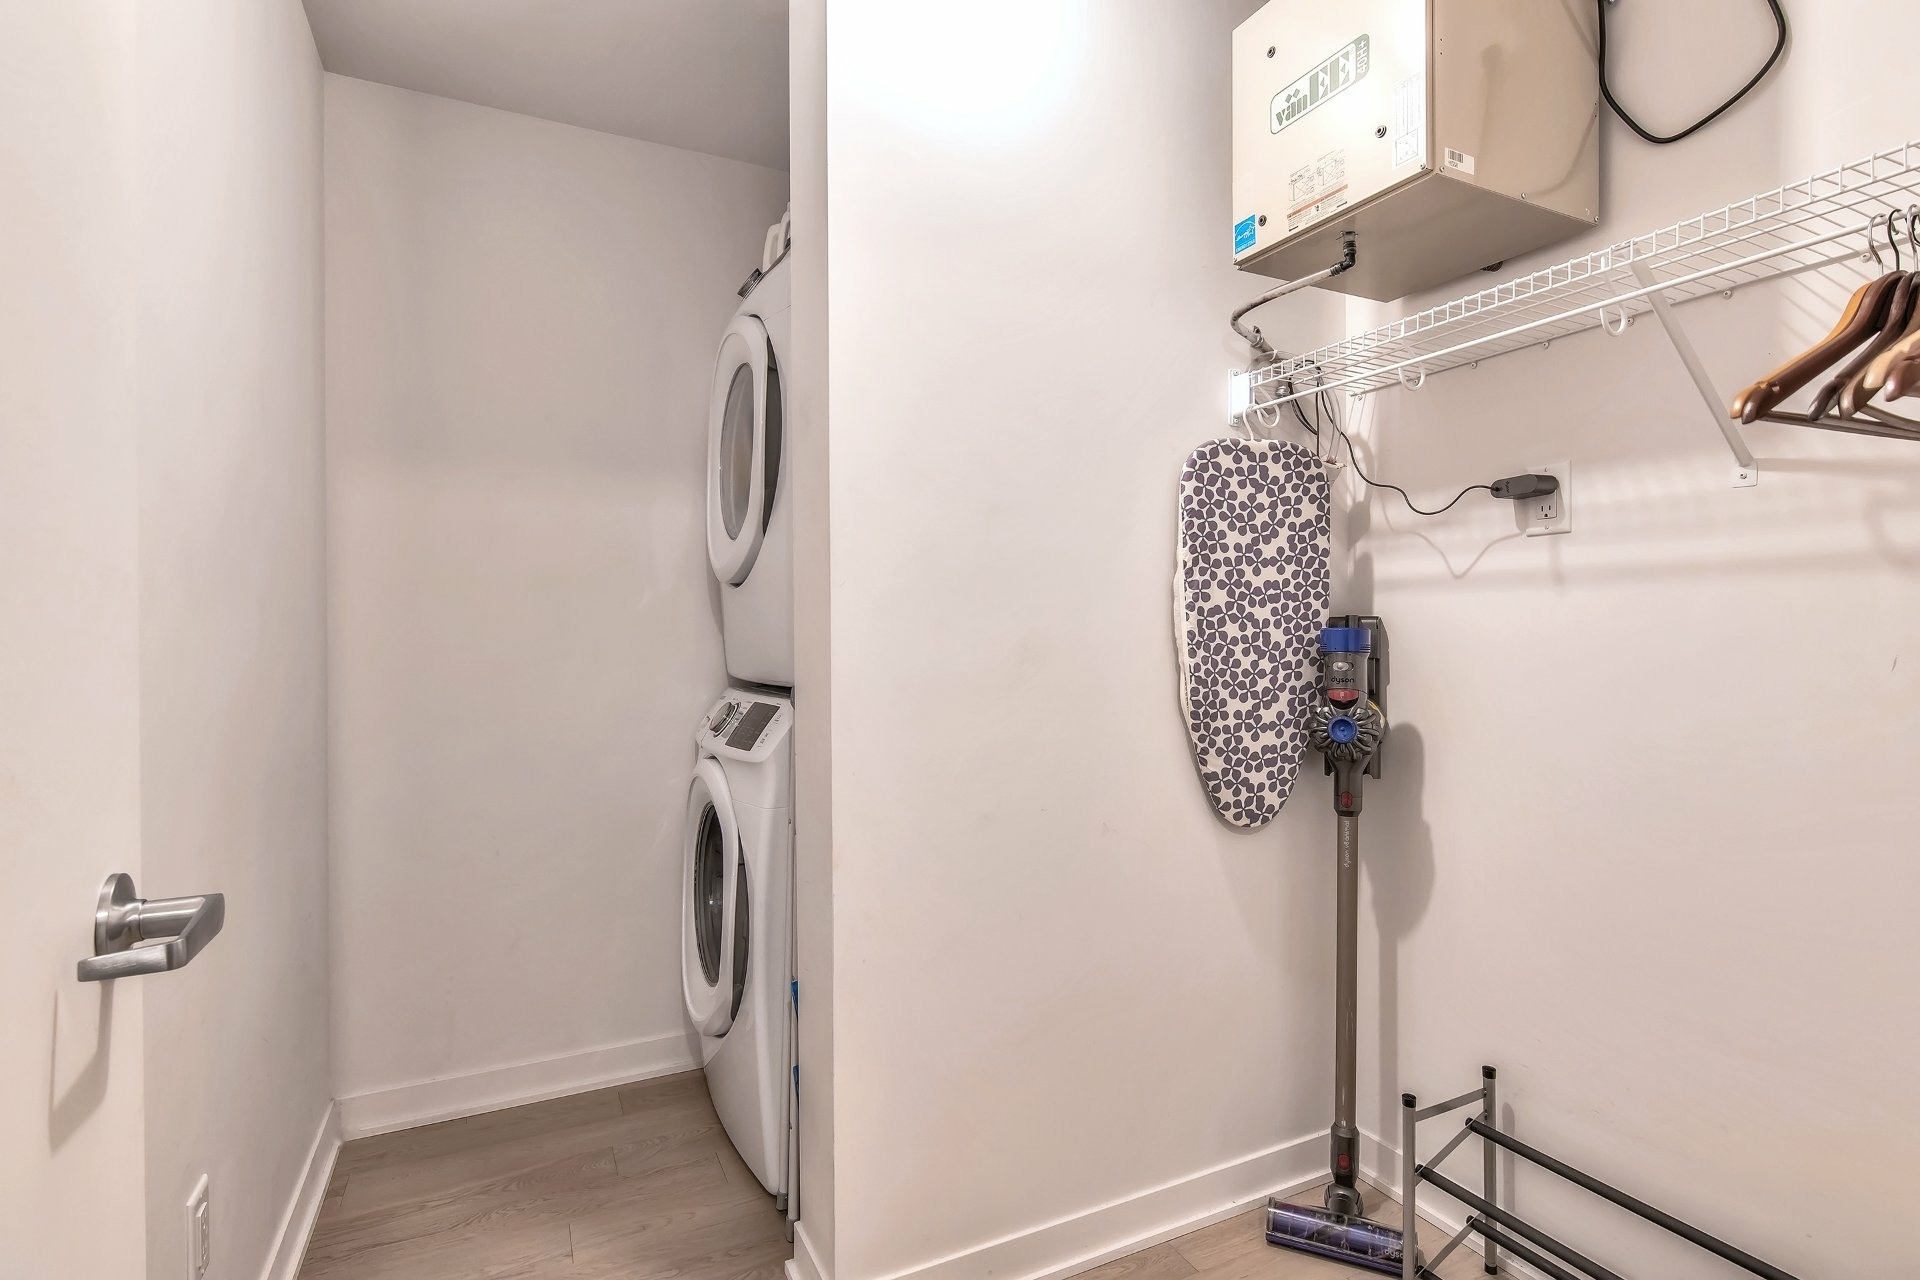 image 4 - Apartment For sale Brossard - 4 rooms